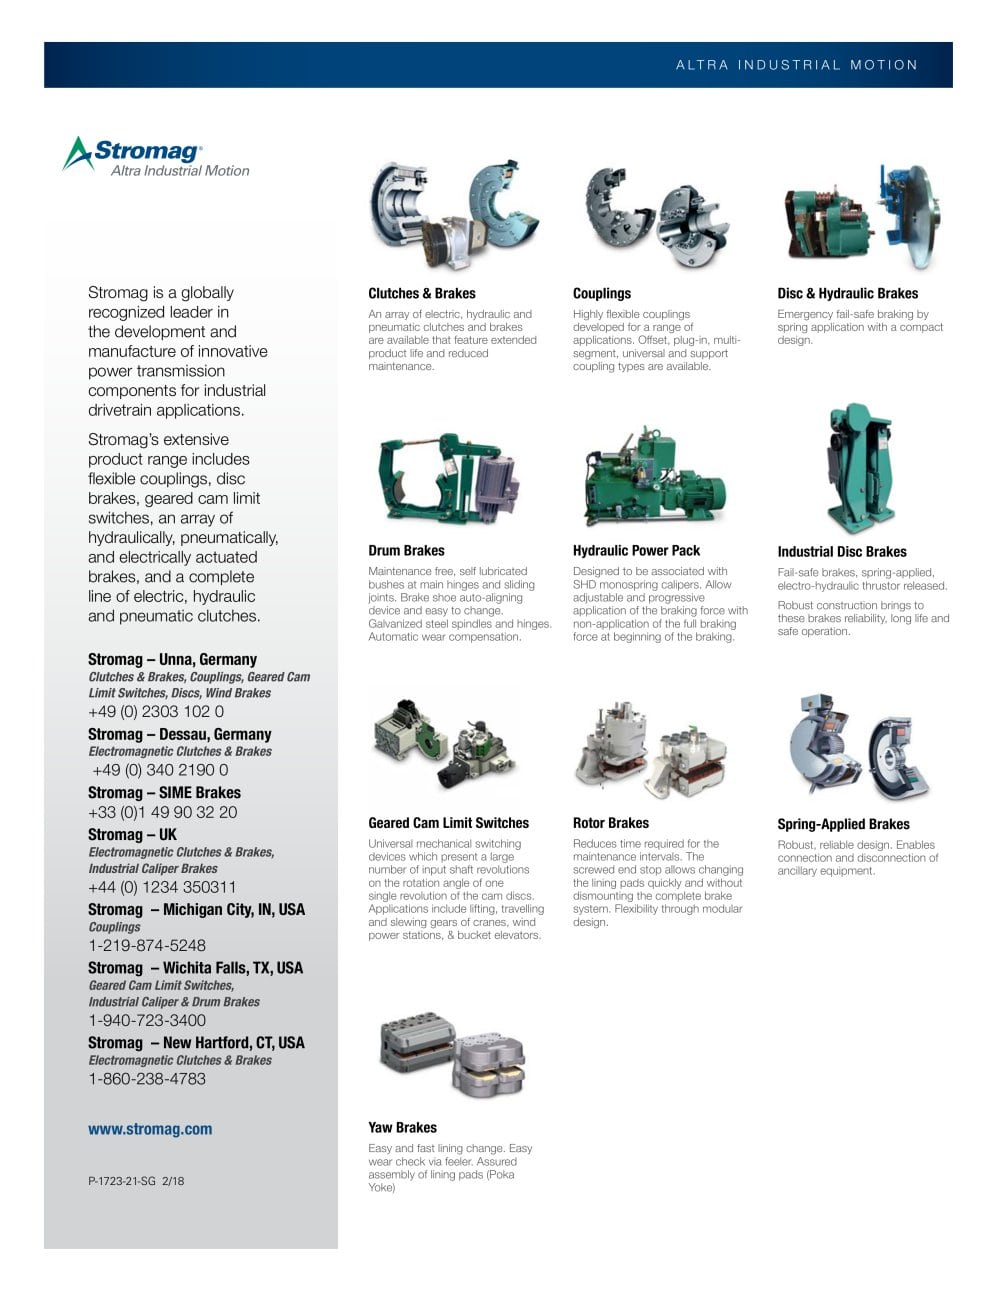 Brakes Type 600 Stromag Pdf Catalogue Technical Documentation Operation Steel Wire Hinge Lever 110 Micro Switch 1 2 Pages